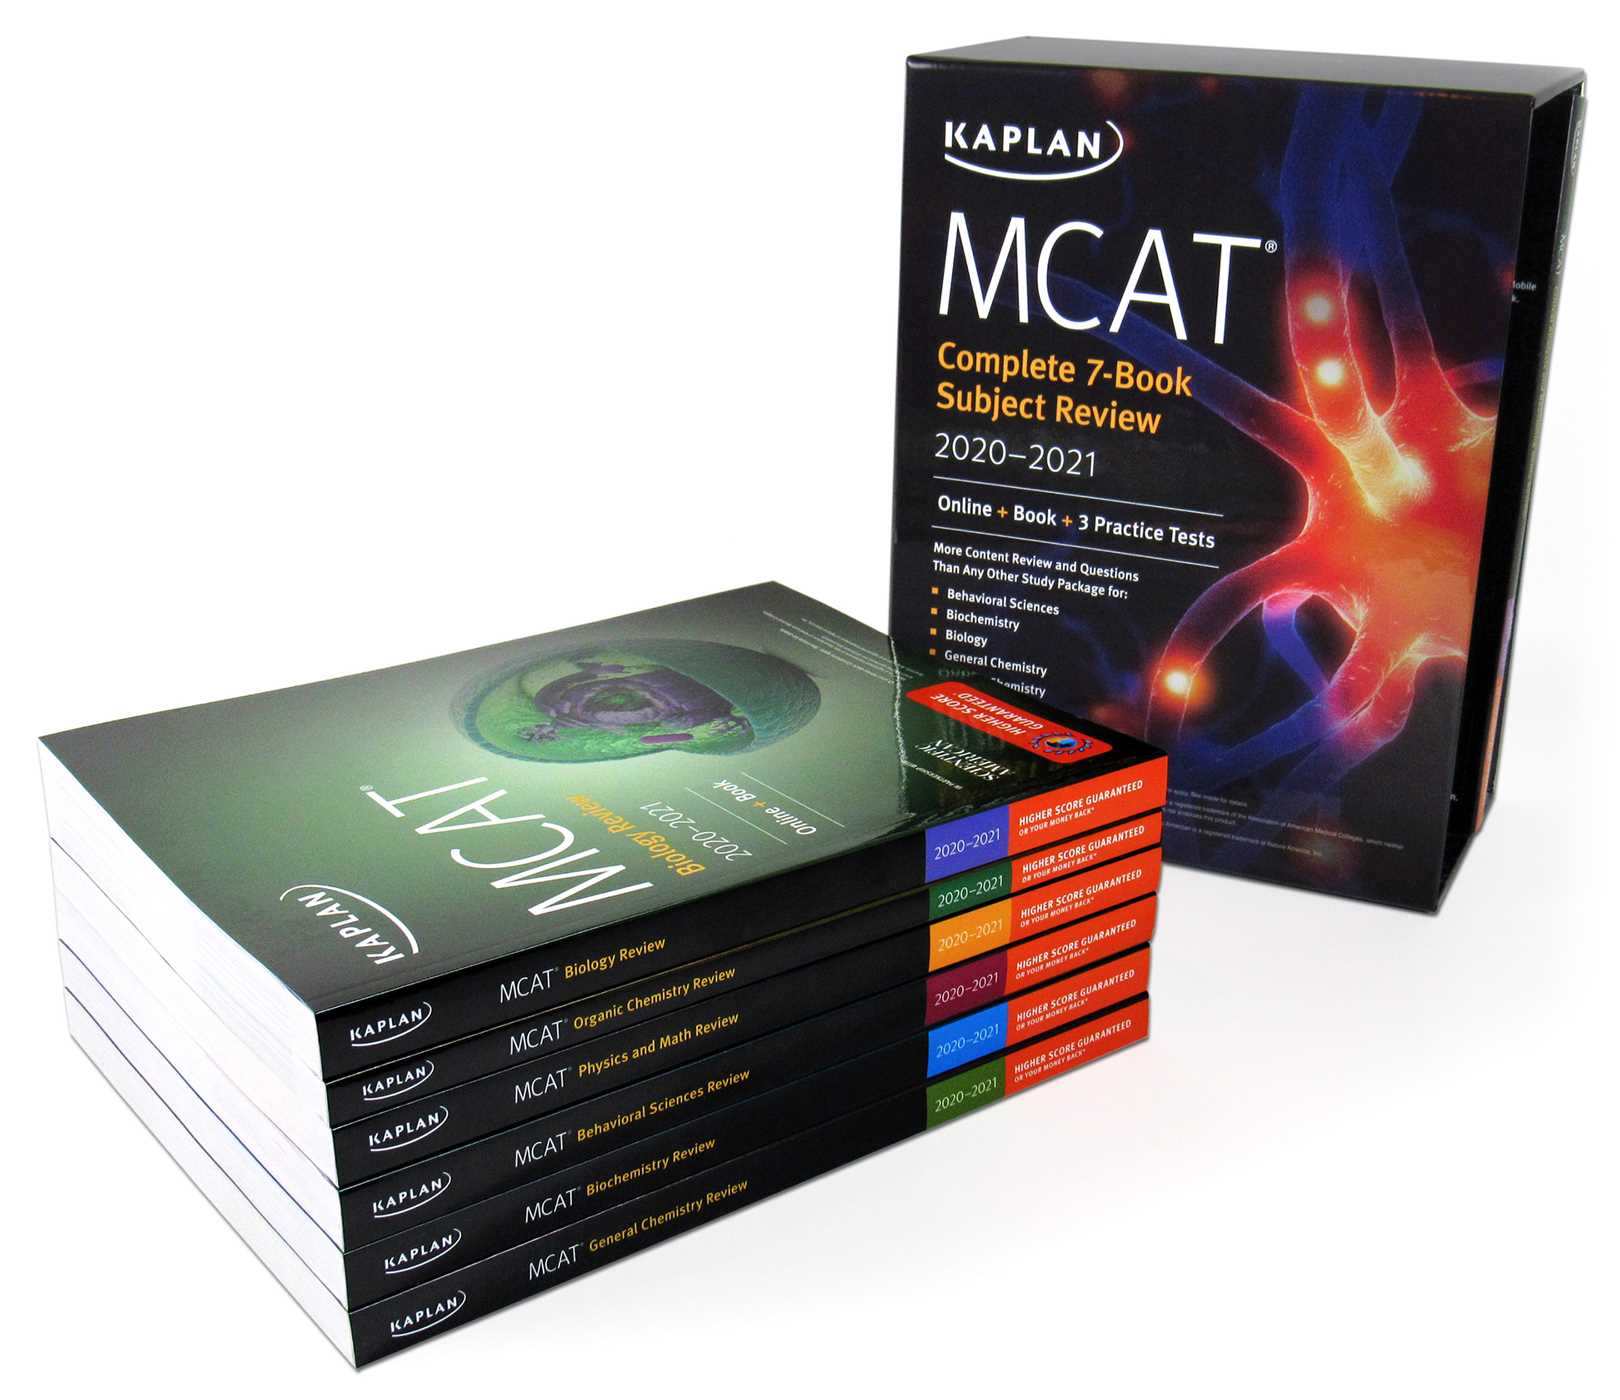 MCAT Complete 7-Book Subject Review 2020-2021 | Book by